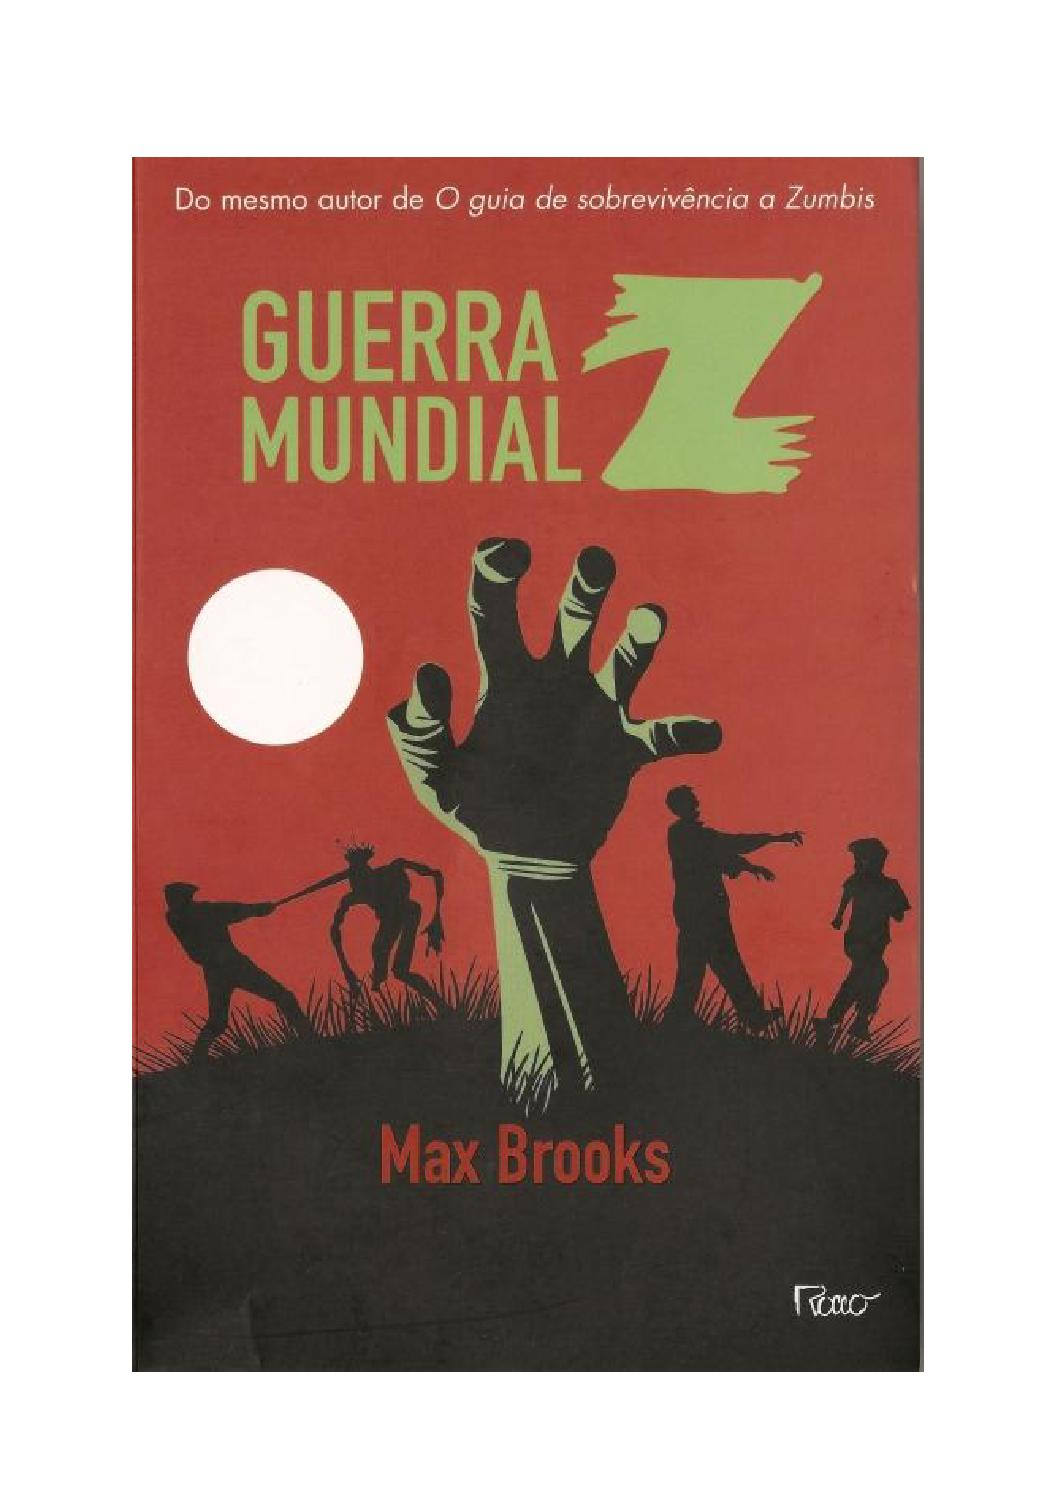 8fdafb9be Guerra mundial z max brooks by Mylena Marins - issuu